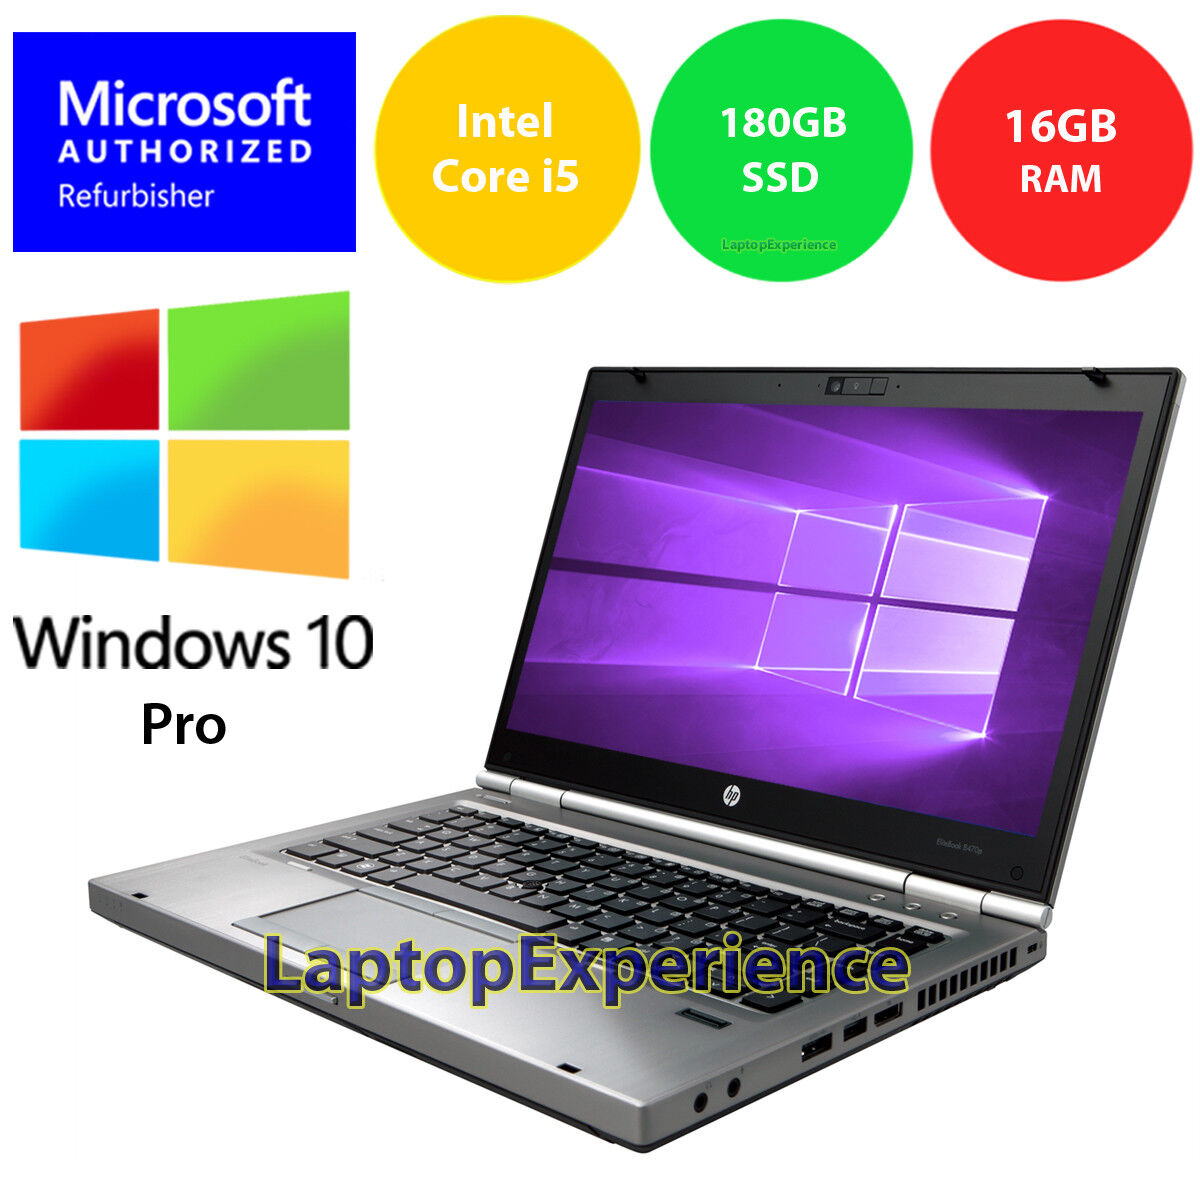 Laptop Windows - HP LAPTOP ELITEBOOK 8470p i5 2.6GHz 16GB 180GB SSD HD WEBCAM WINDOWS 10 PRO WiFi